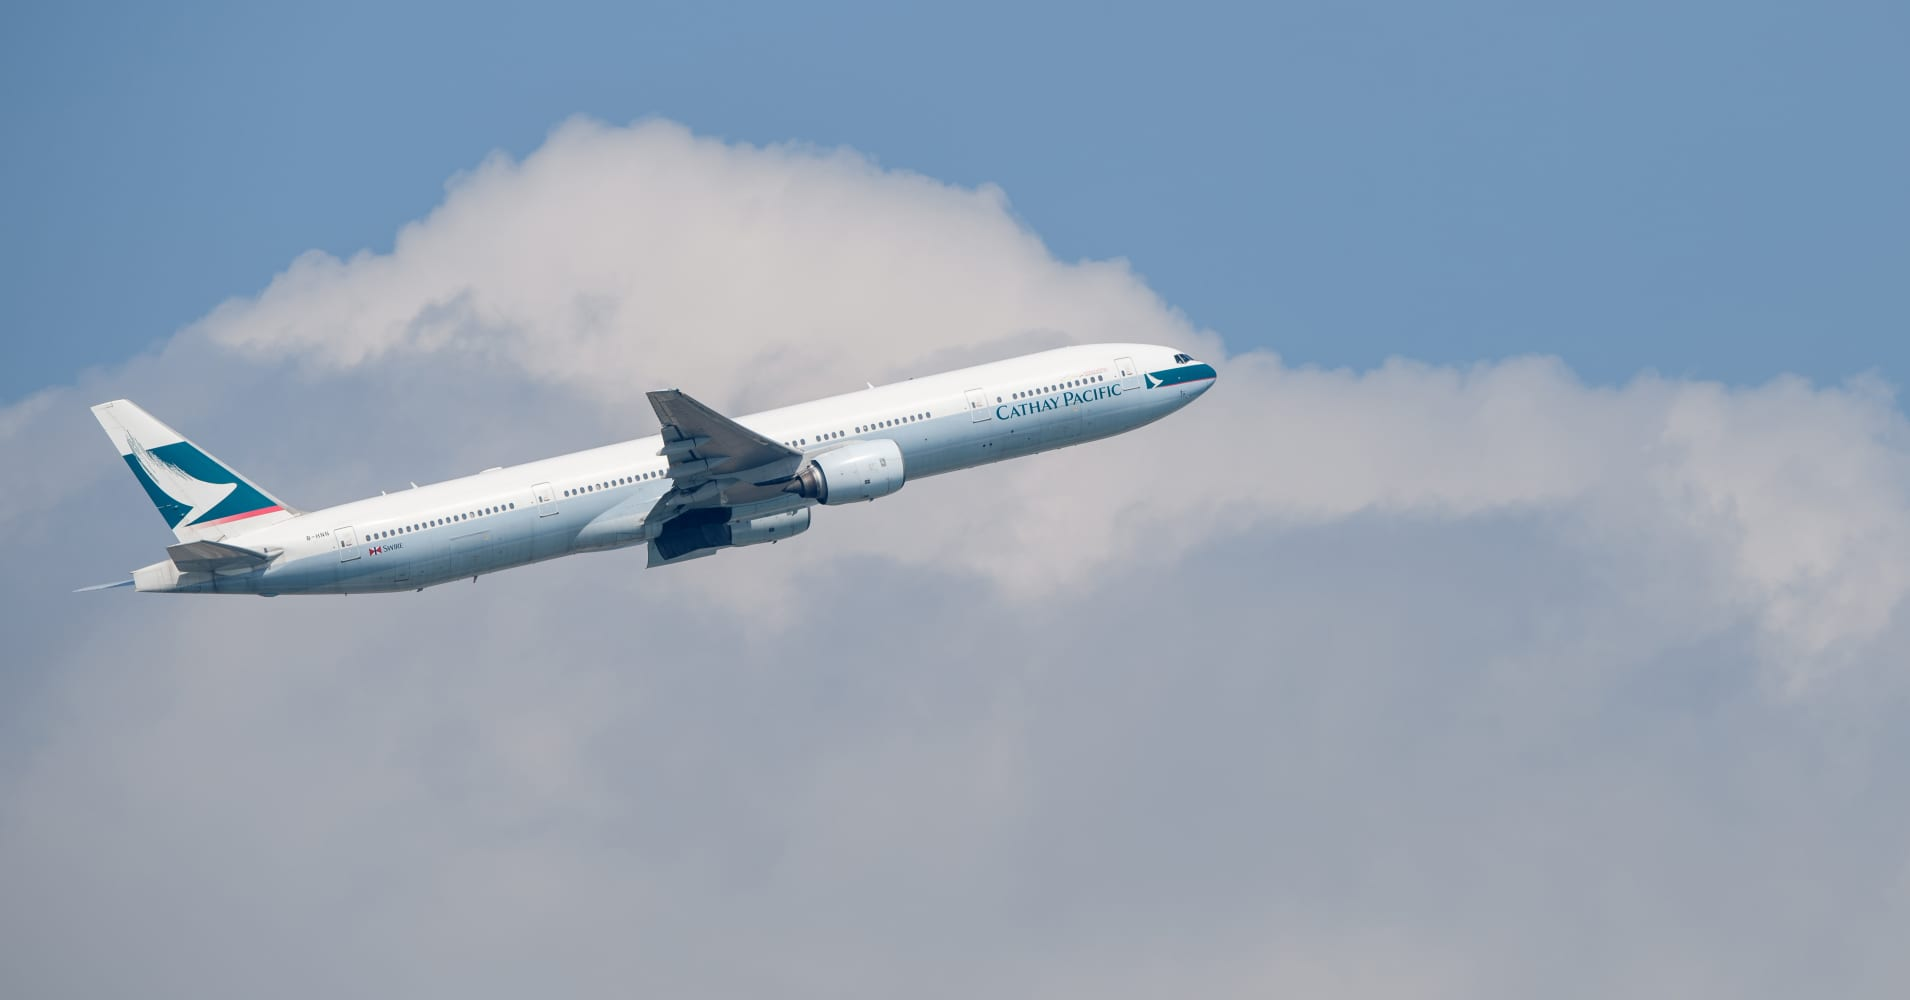 Cathay Pacific says new budget airline would serve 'unique market segment'